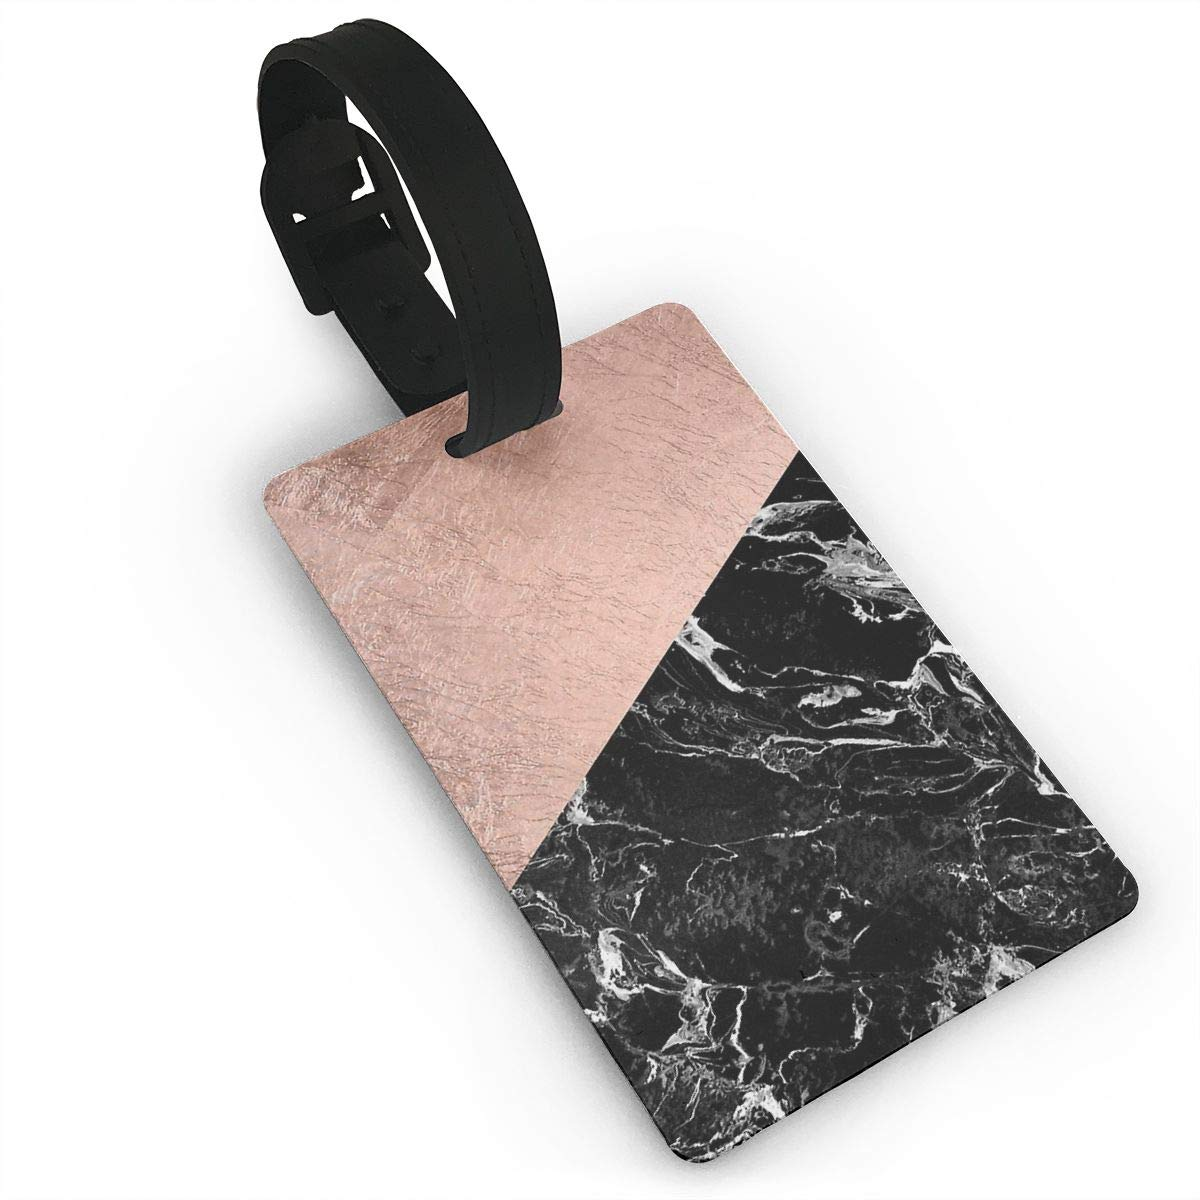 Set of 2 Chic Modern Rose Gold Black Marble Color Block Luggage Tags Suitcase Labels Bag Travel Accessories